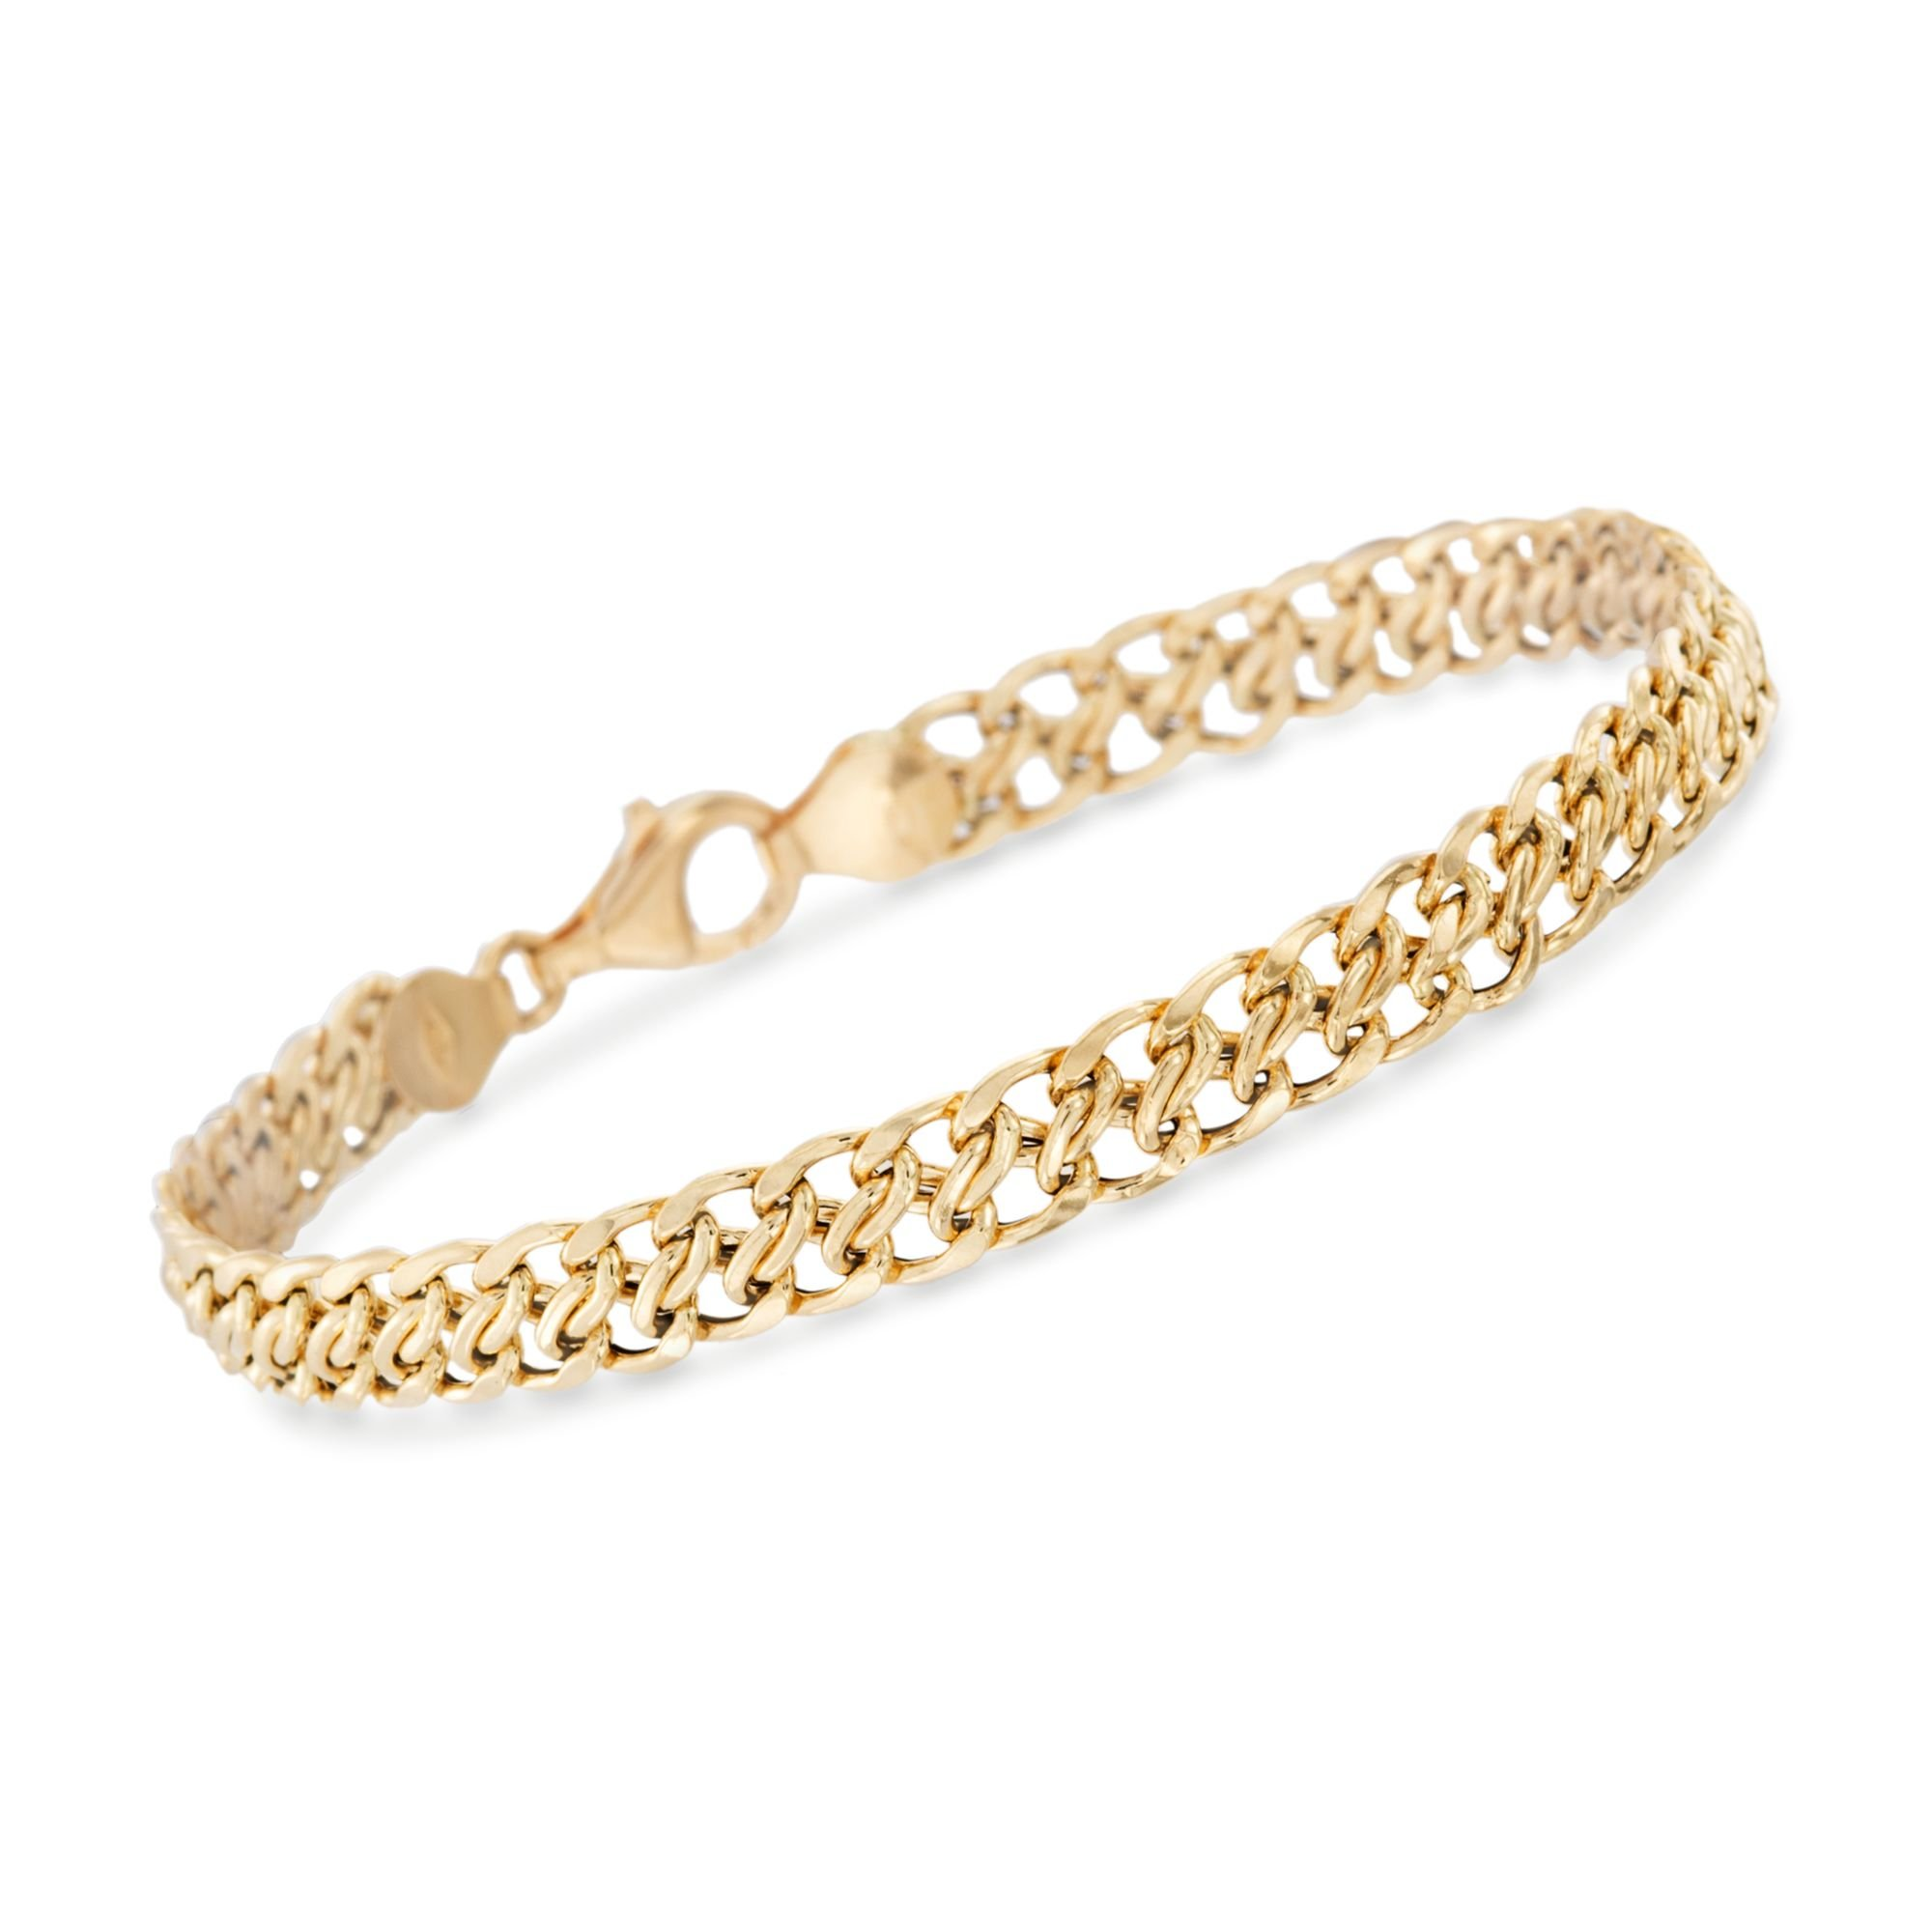 Ross-Simons 18kt Yellow Gold Woven Link Bracelet, Made in Italy, Includes Presentation Box